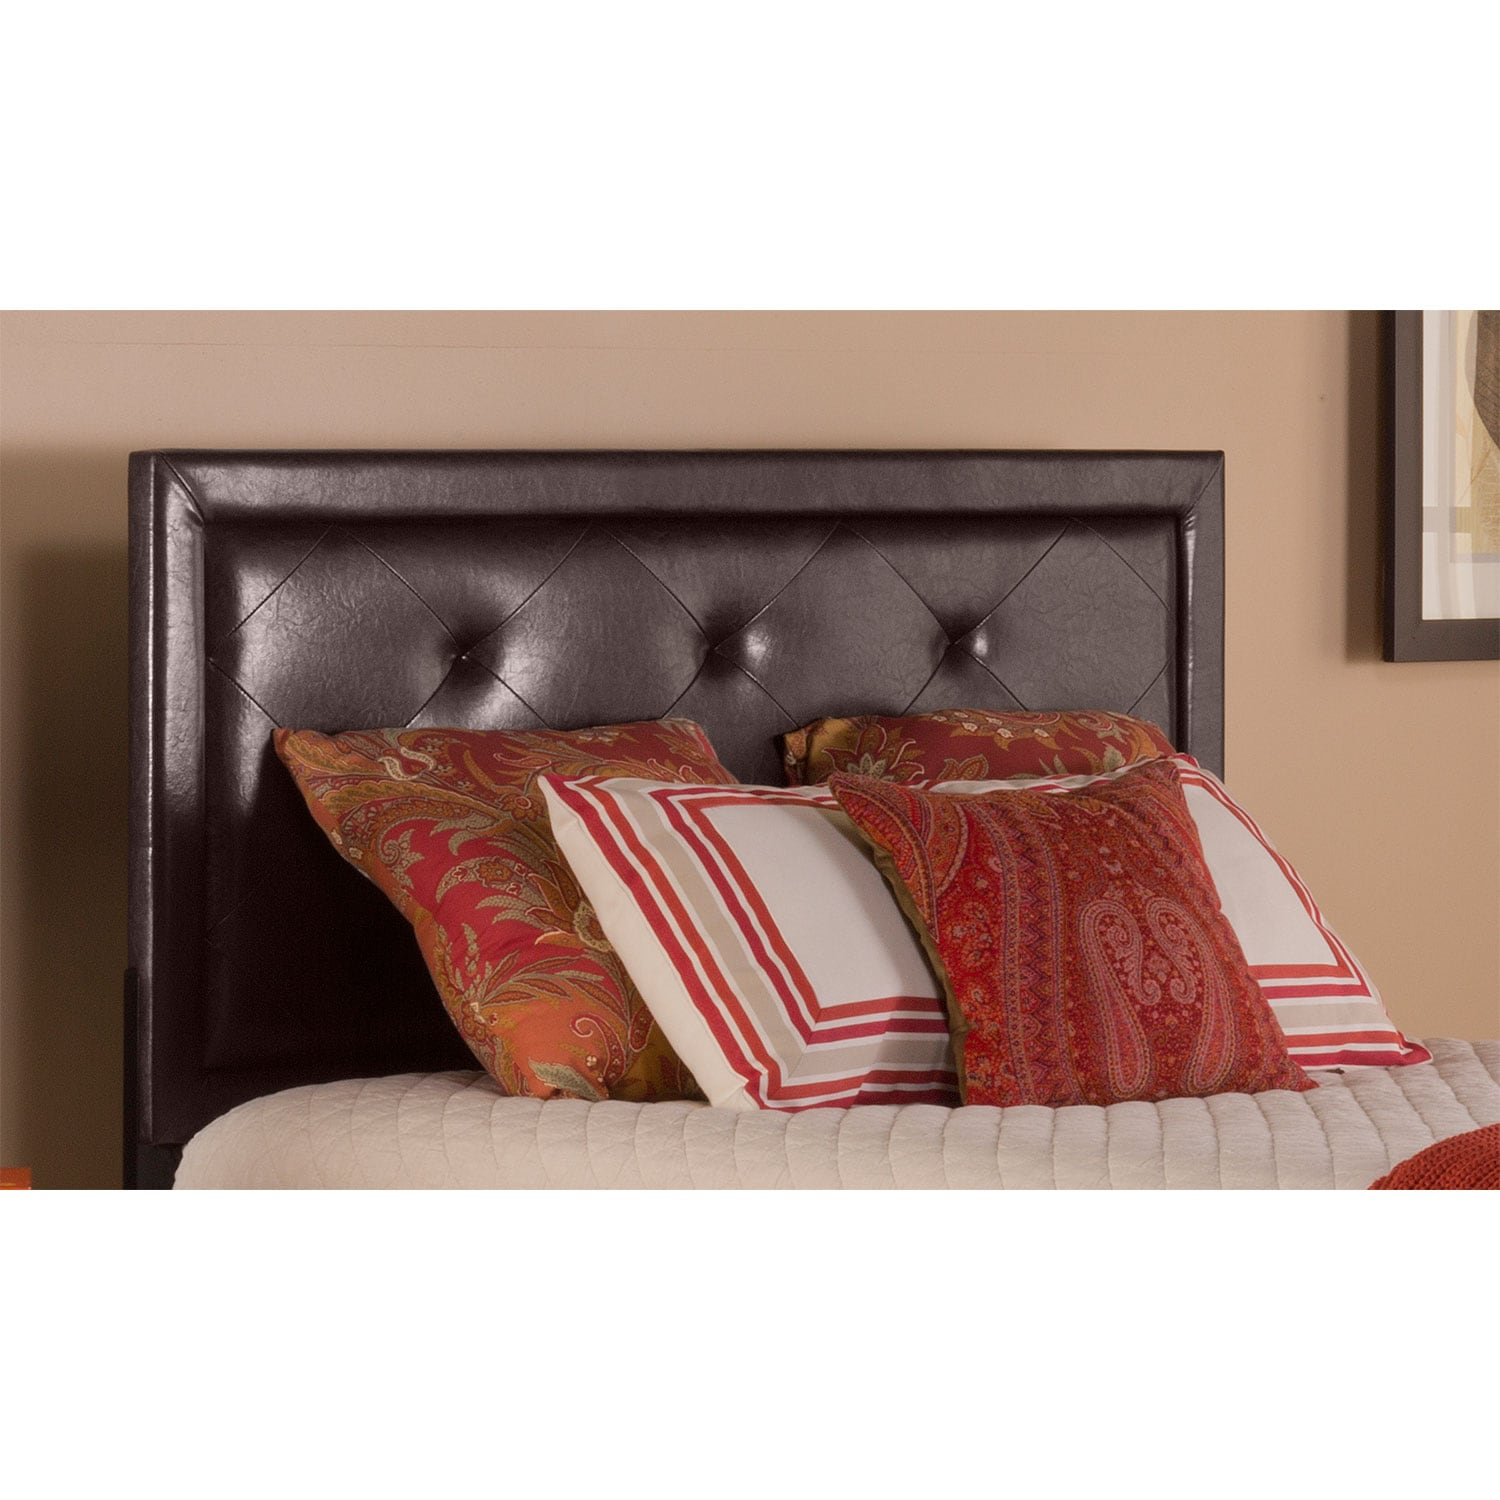 Becker Queen Headboard - Brown